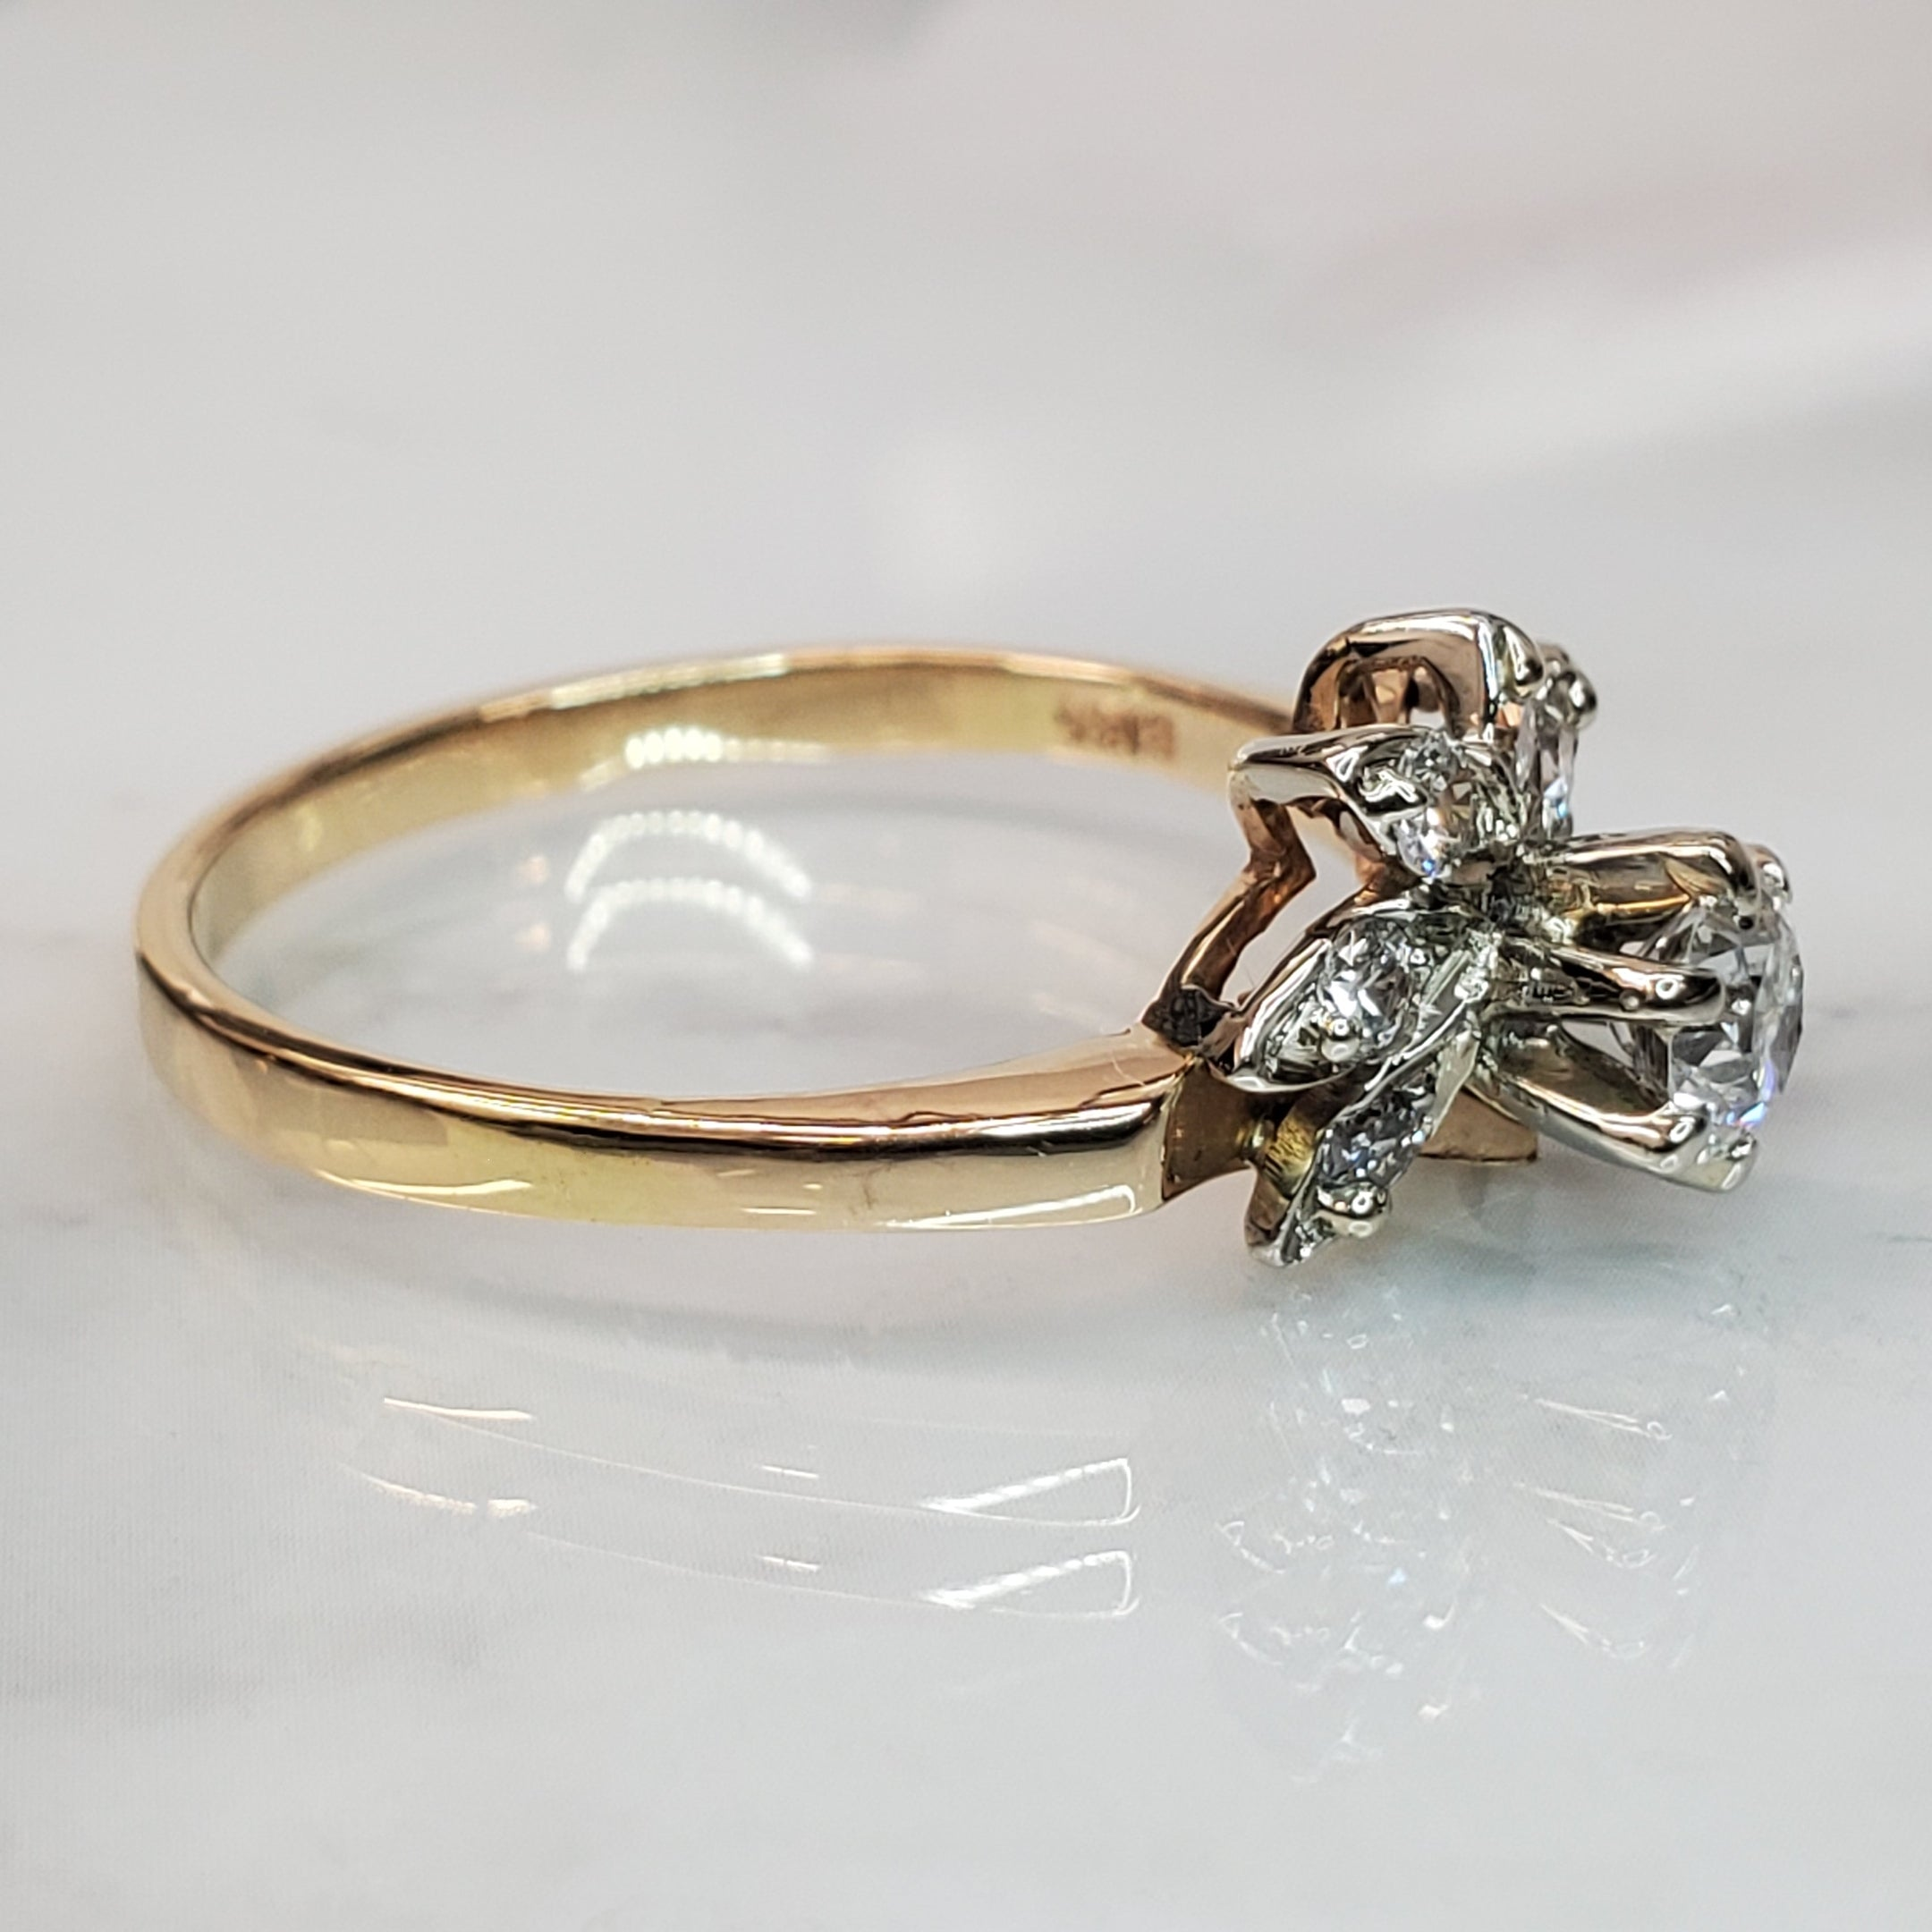 Vintage Floral  Diamond Ring in 18K Yellow Gold